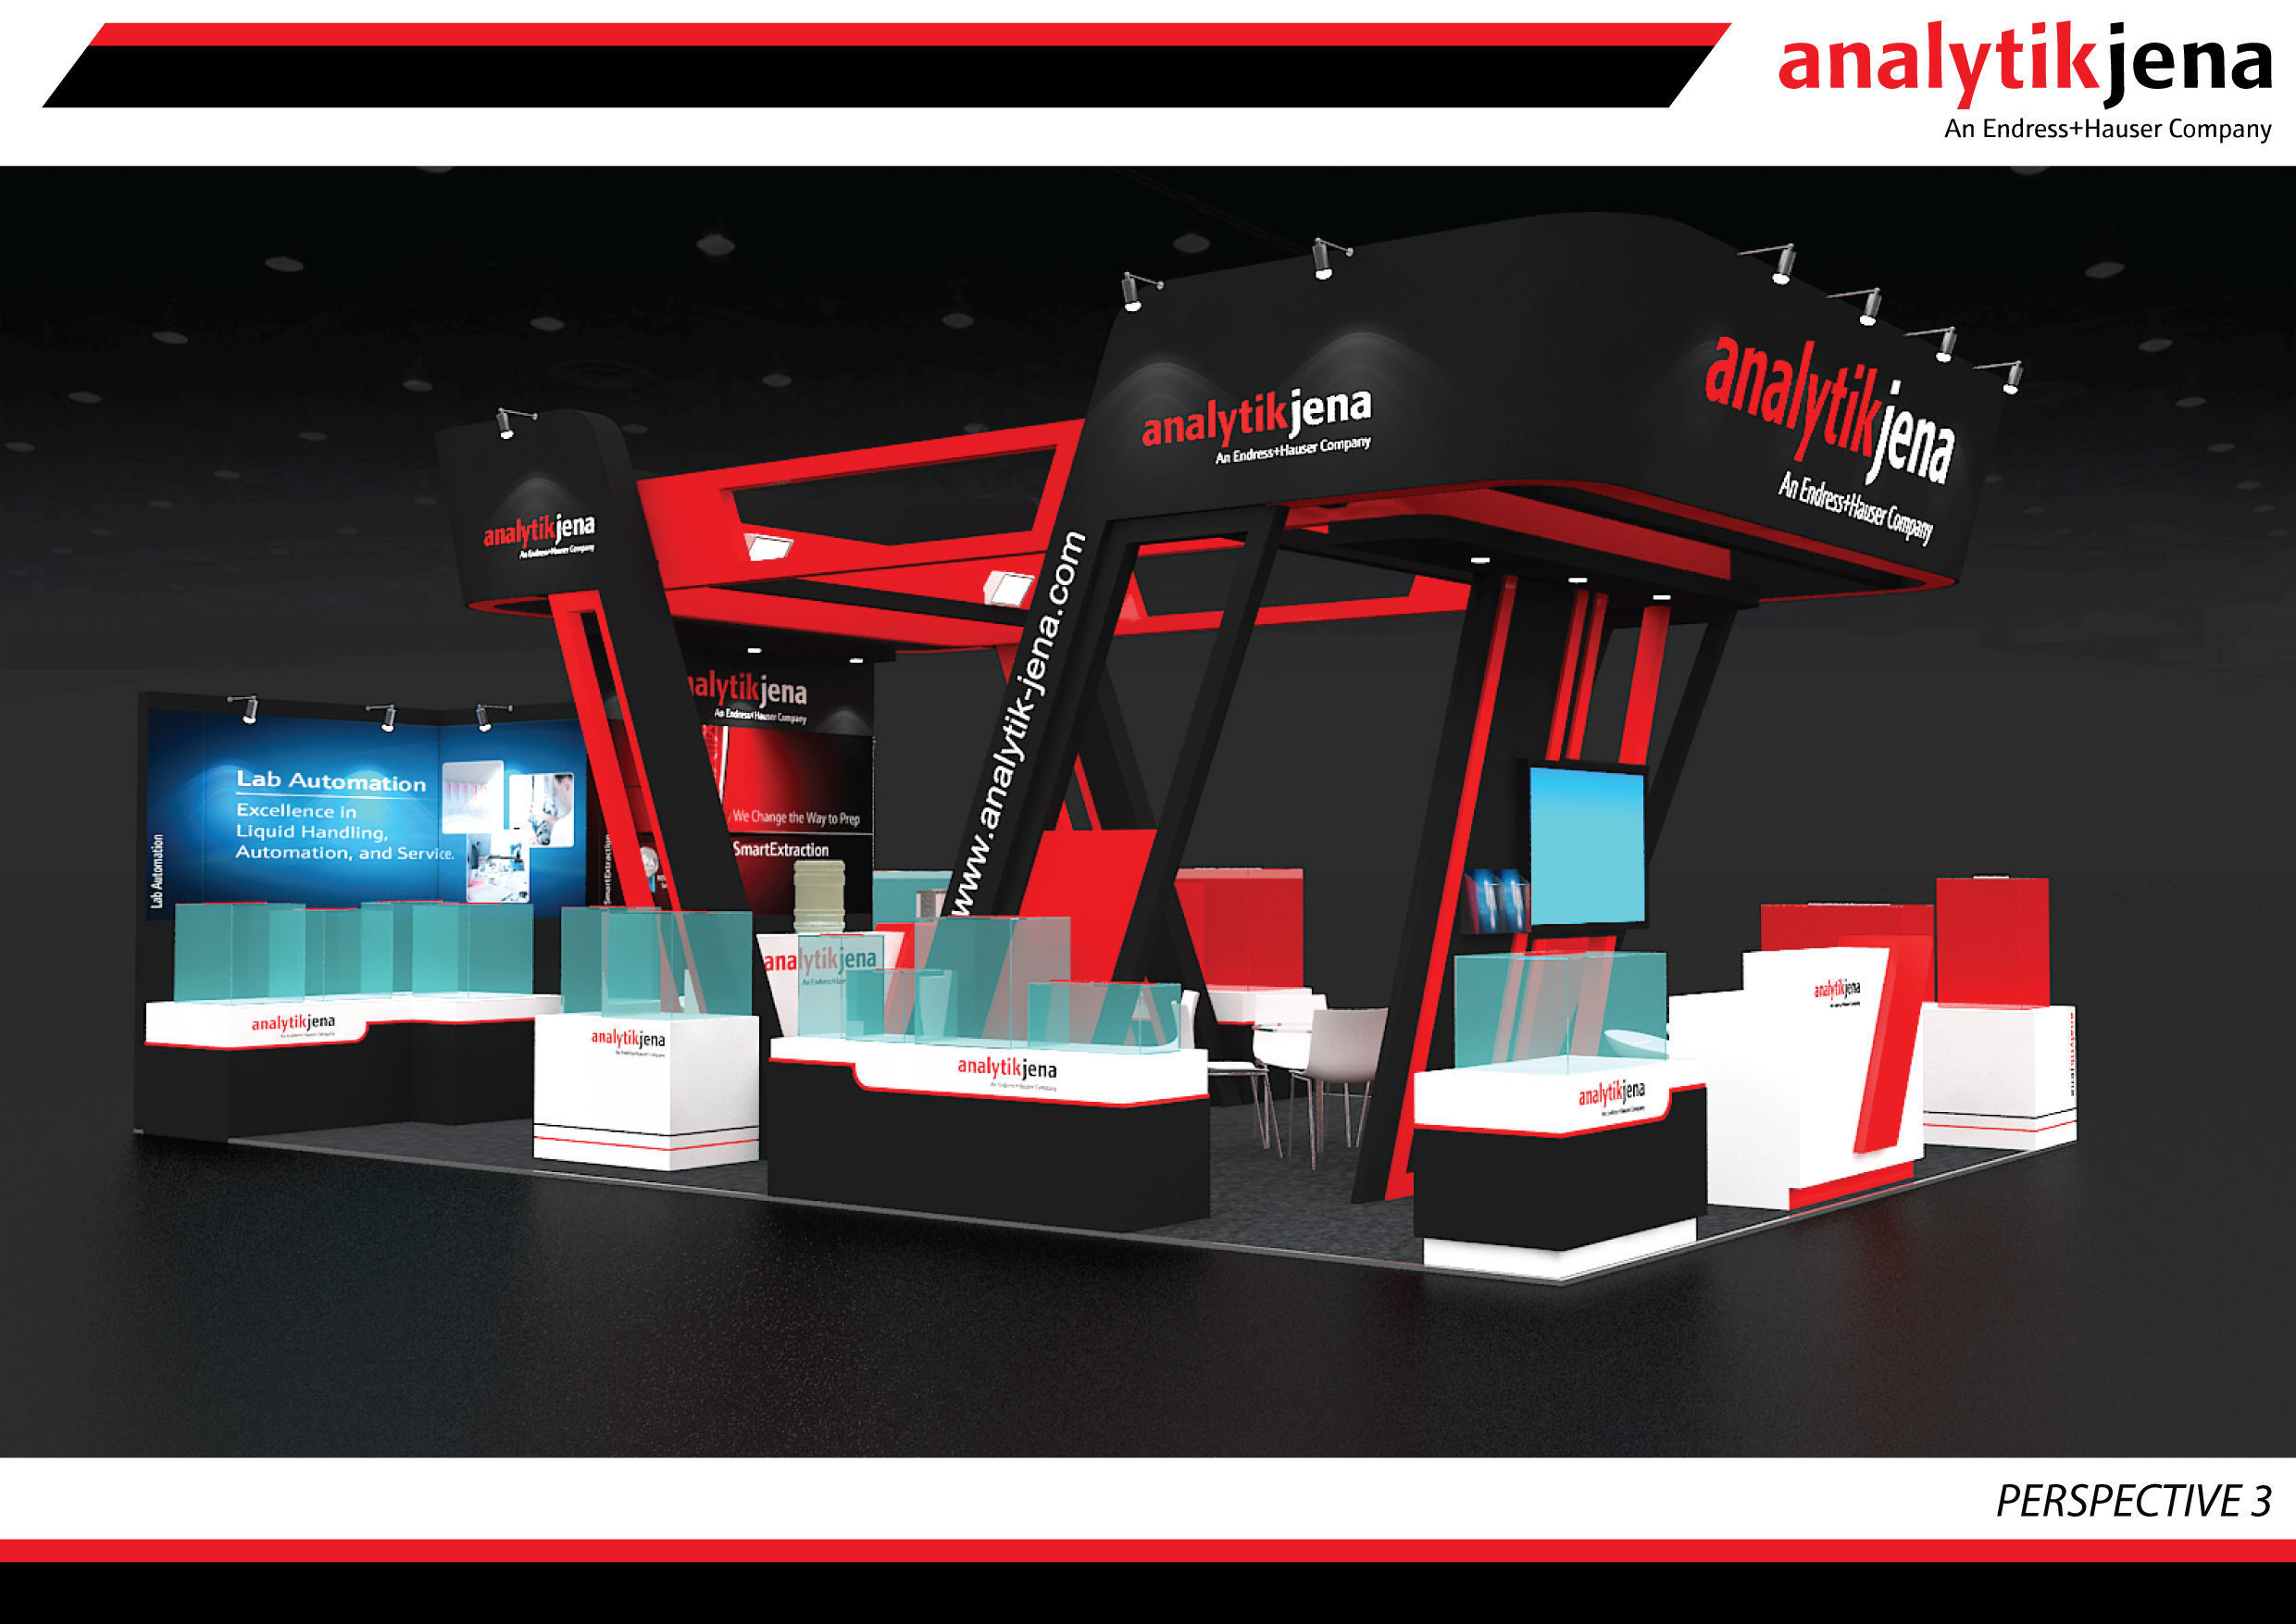 Booth Analytik Jena design size 9 X 6m 54sqm